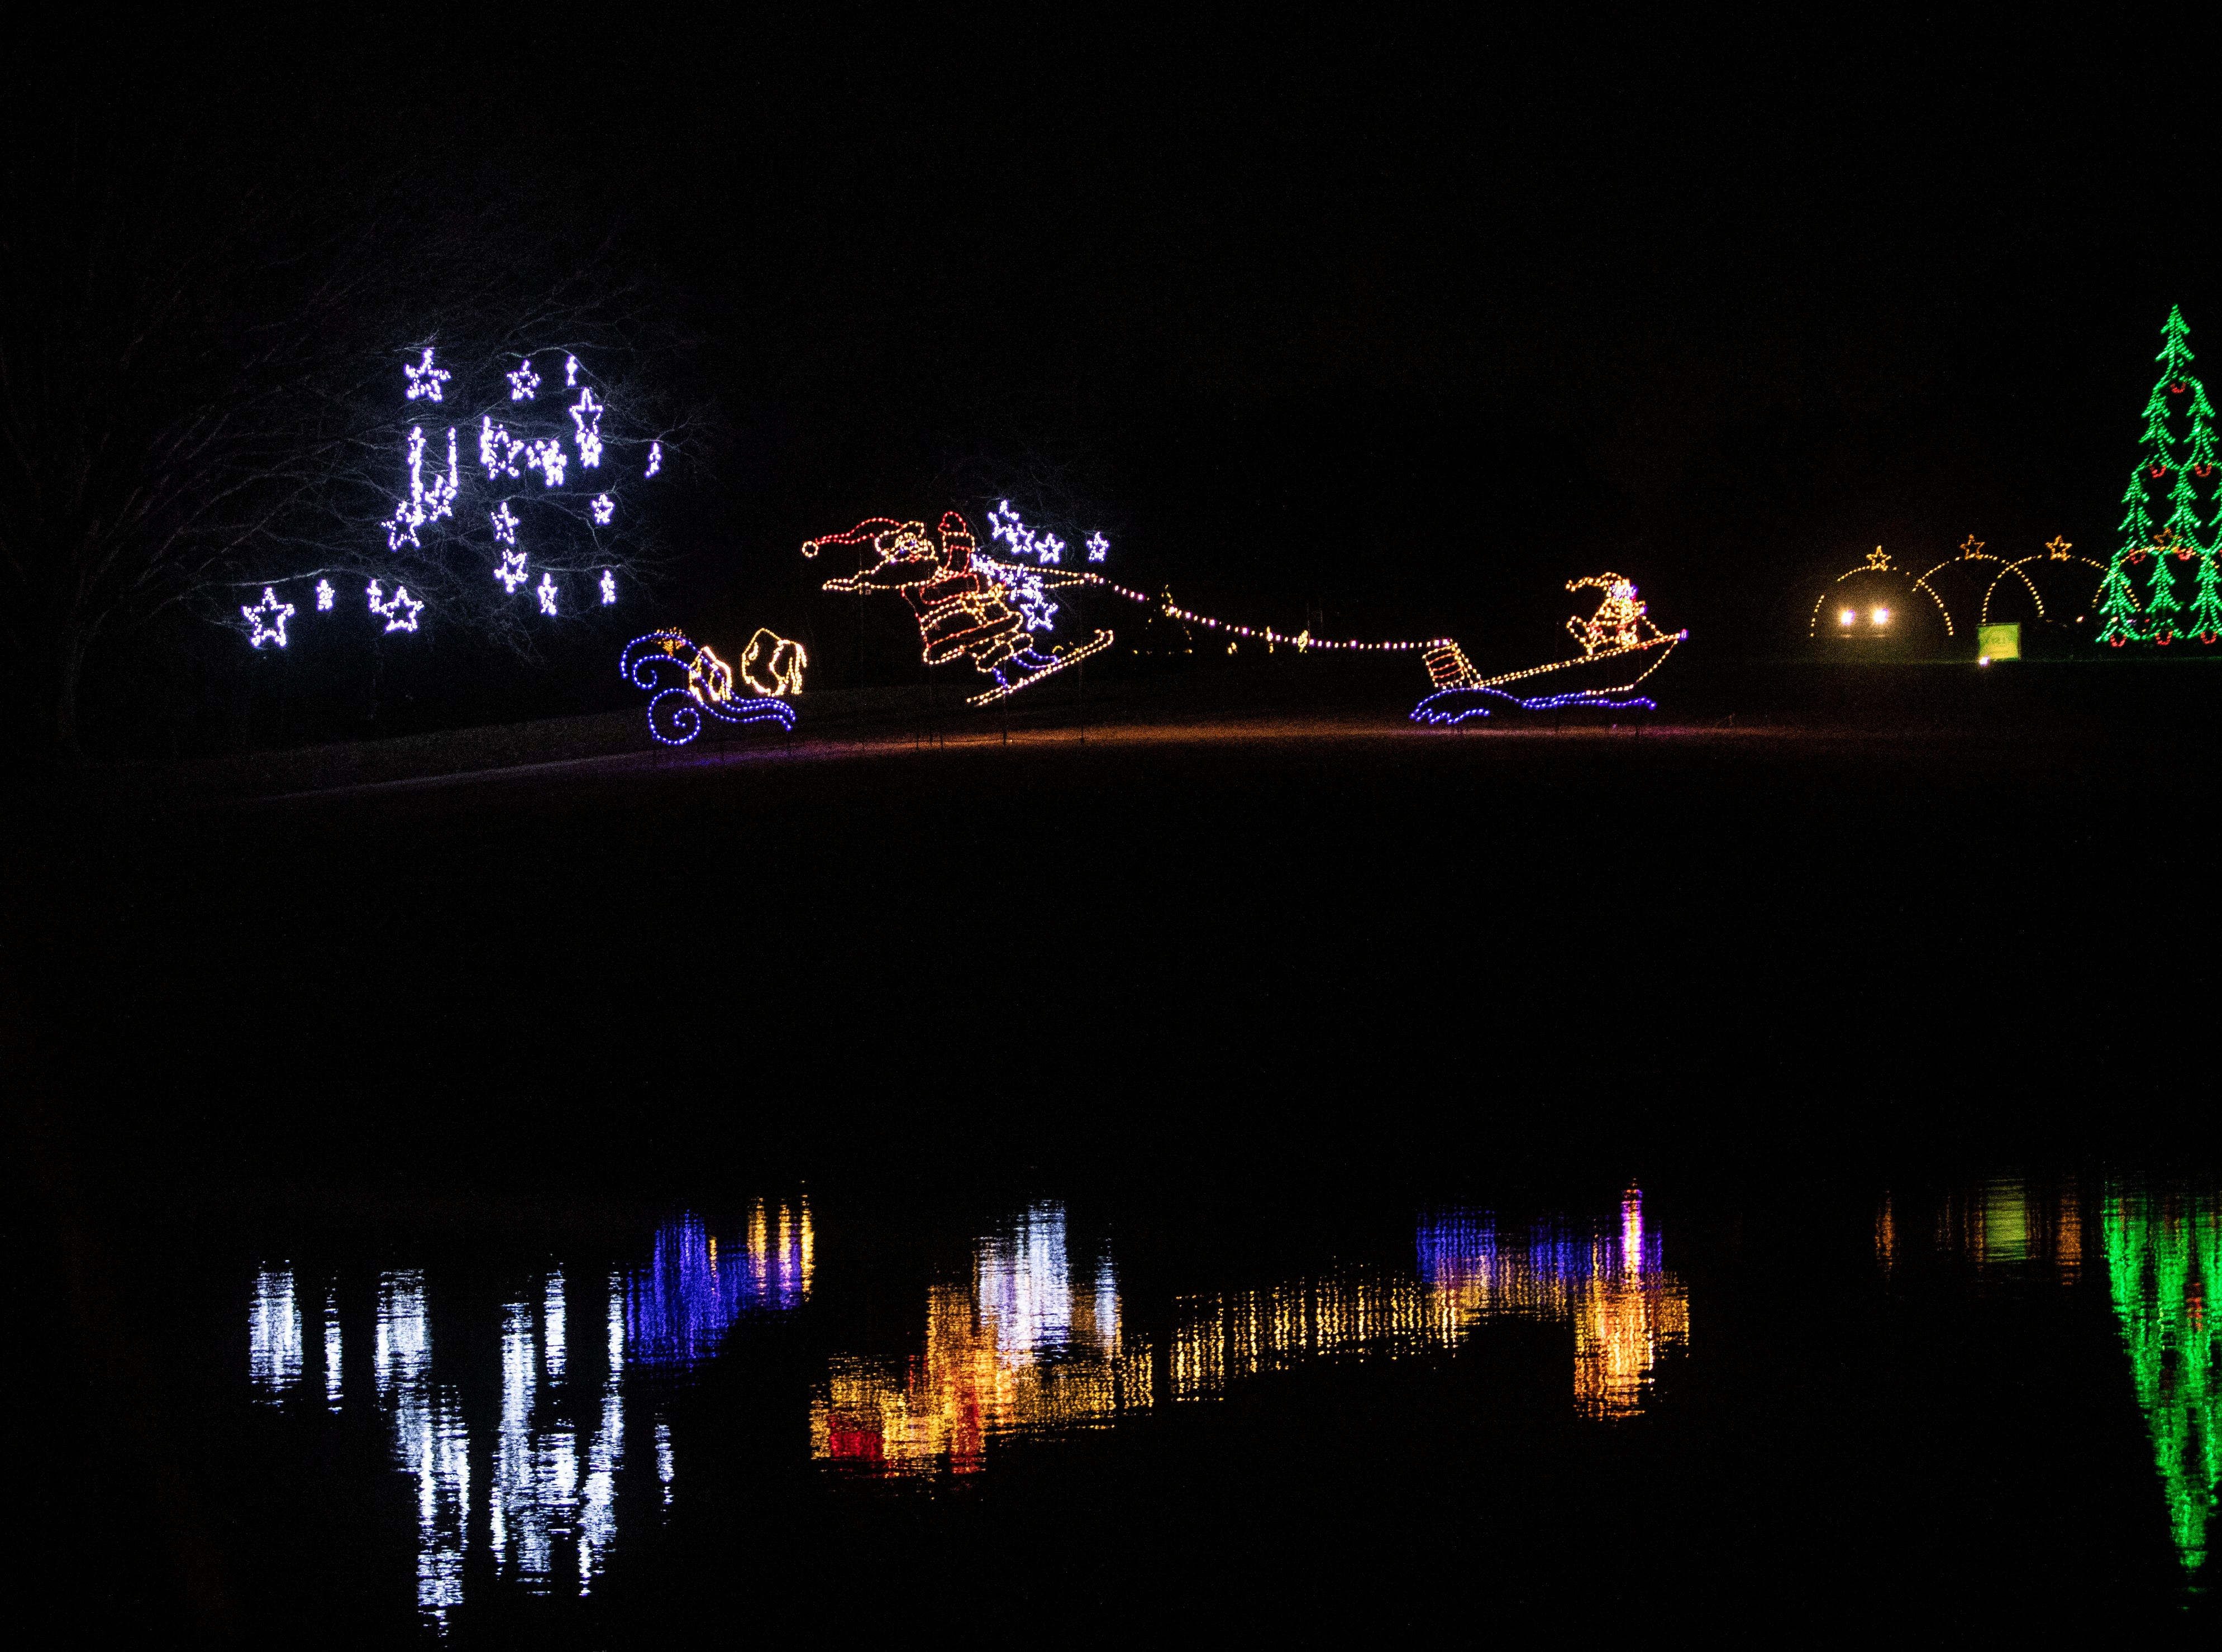 Starry Nights, annual drive-through light display at Shelby Farms, features walking trails of lights and a drive-through display.